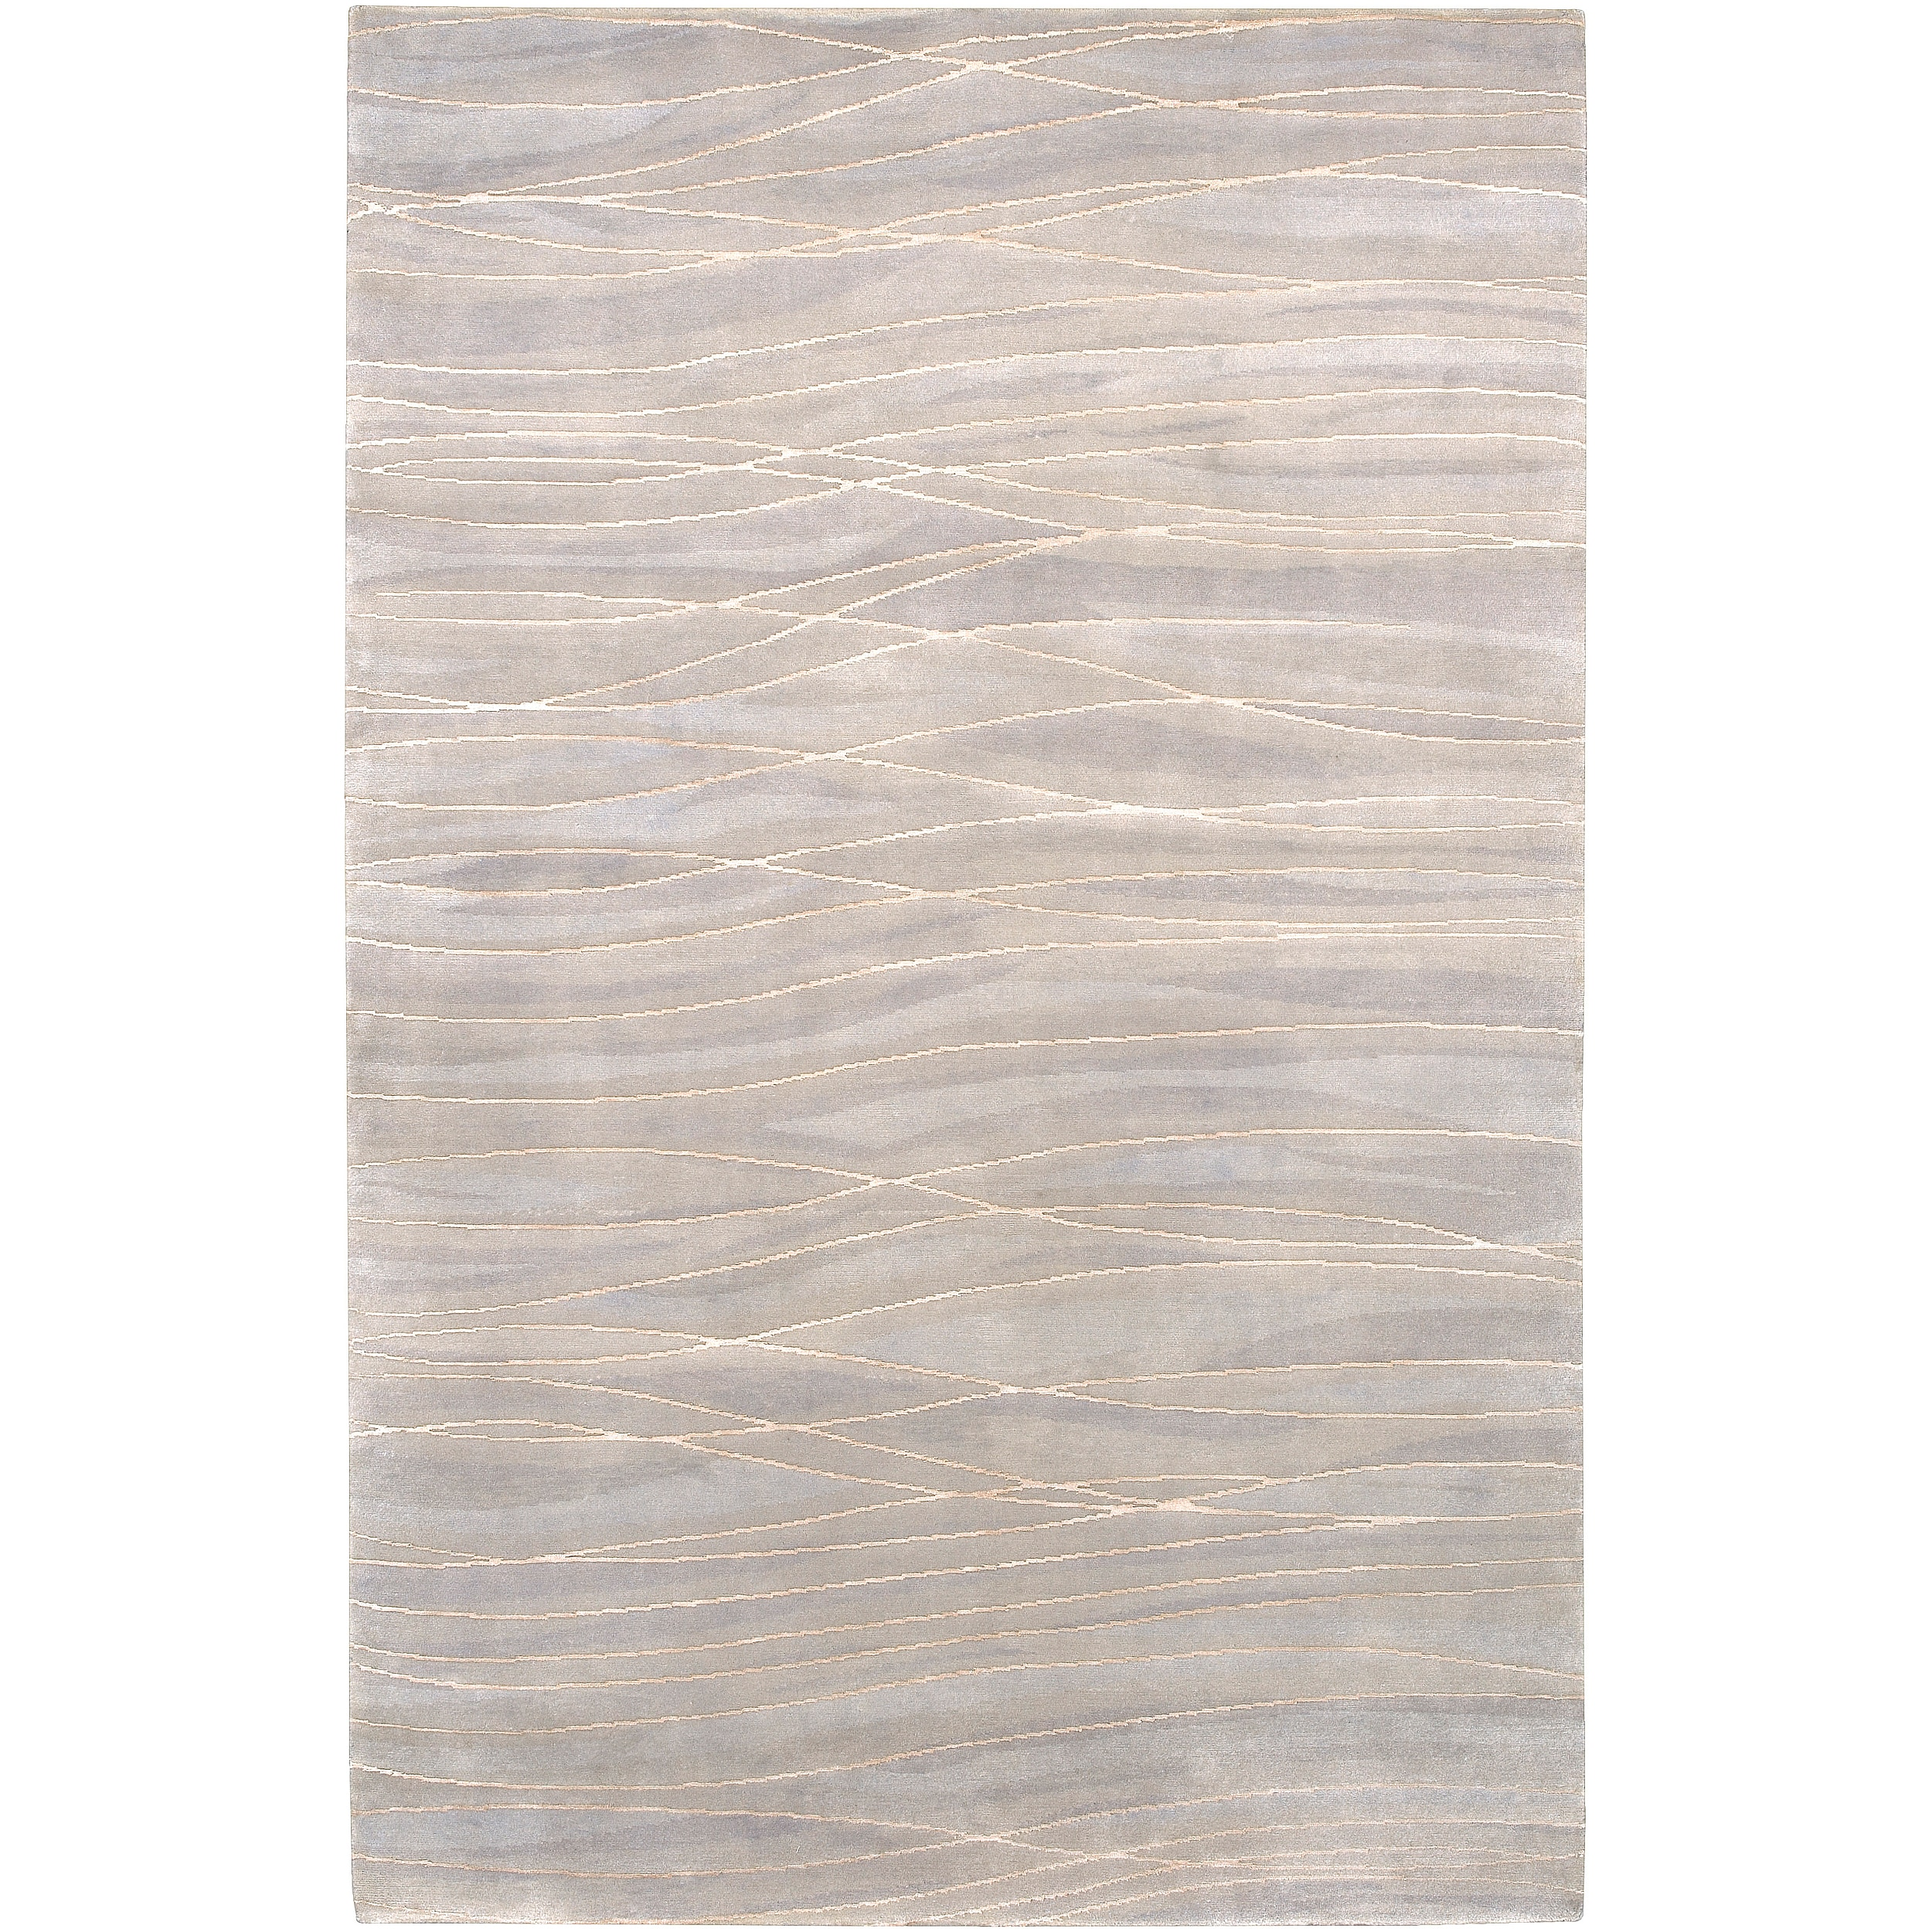 Hand-knotted Cluffranch Beige Abstract Design Wool Rug (8' x 11')